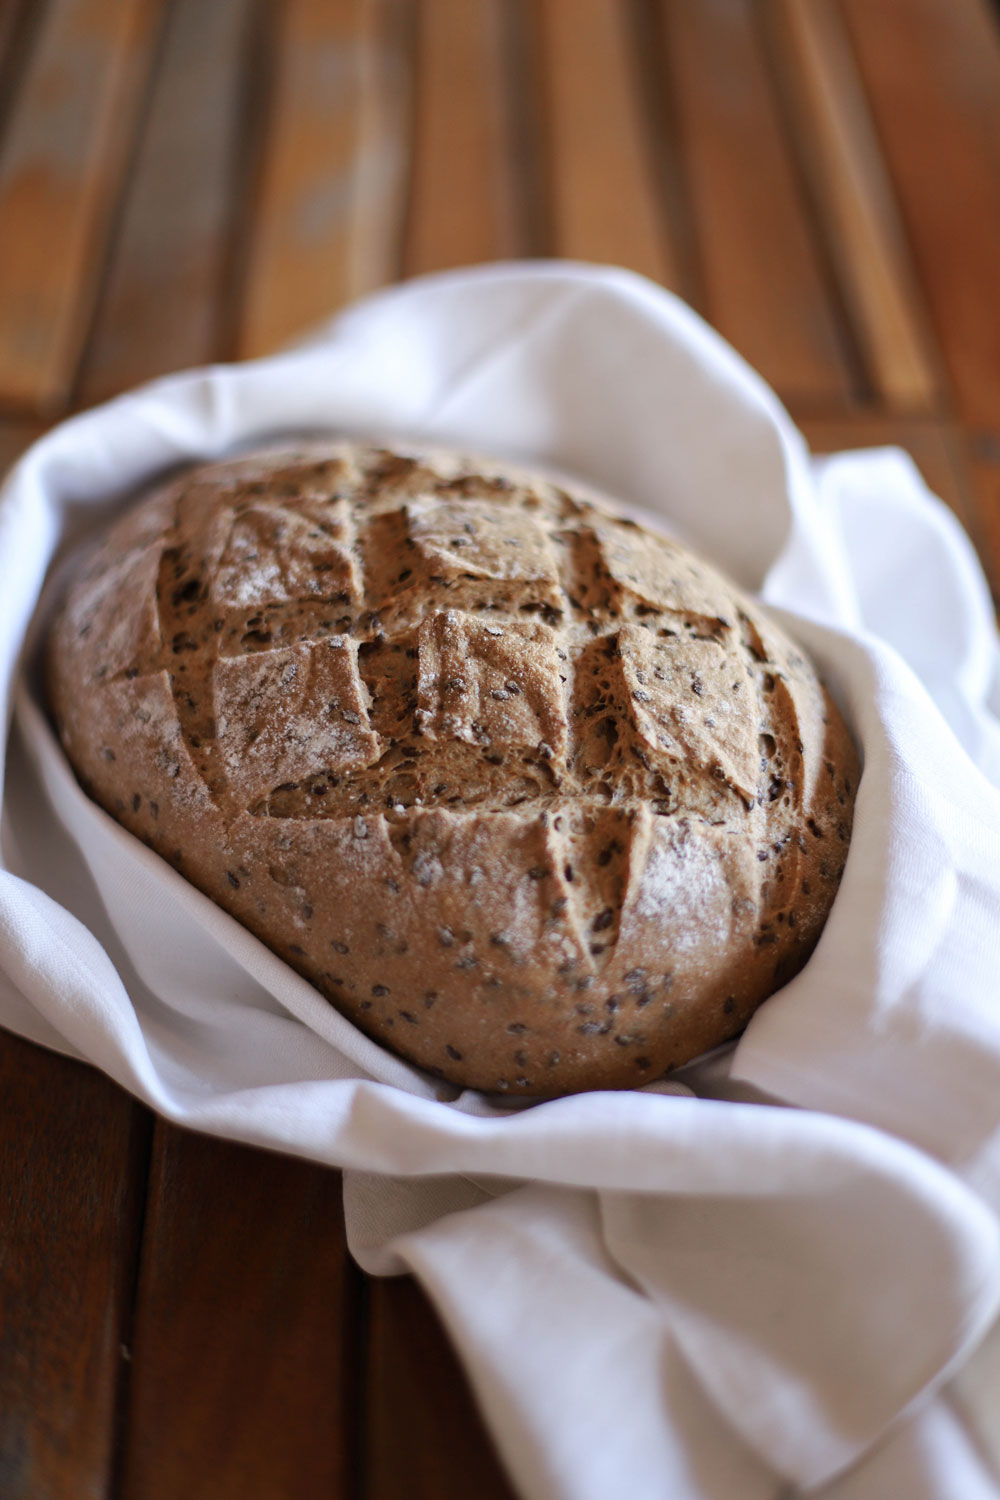 Backwaren_Wilhelm-zuckerfreiesBio-Brot-glutenfree-Berlin-backery061